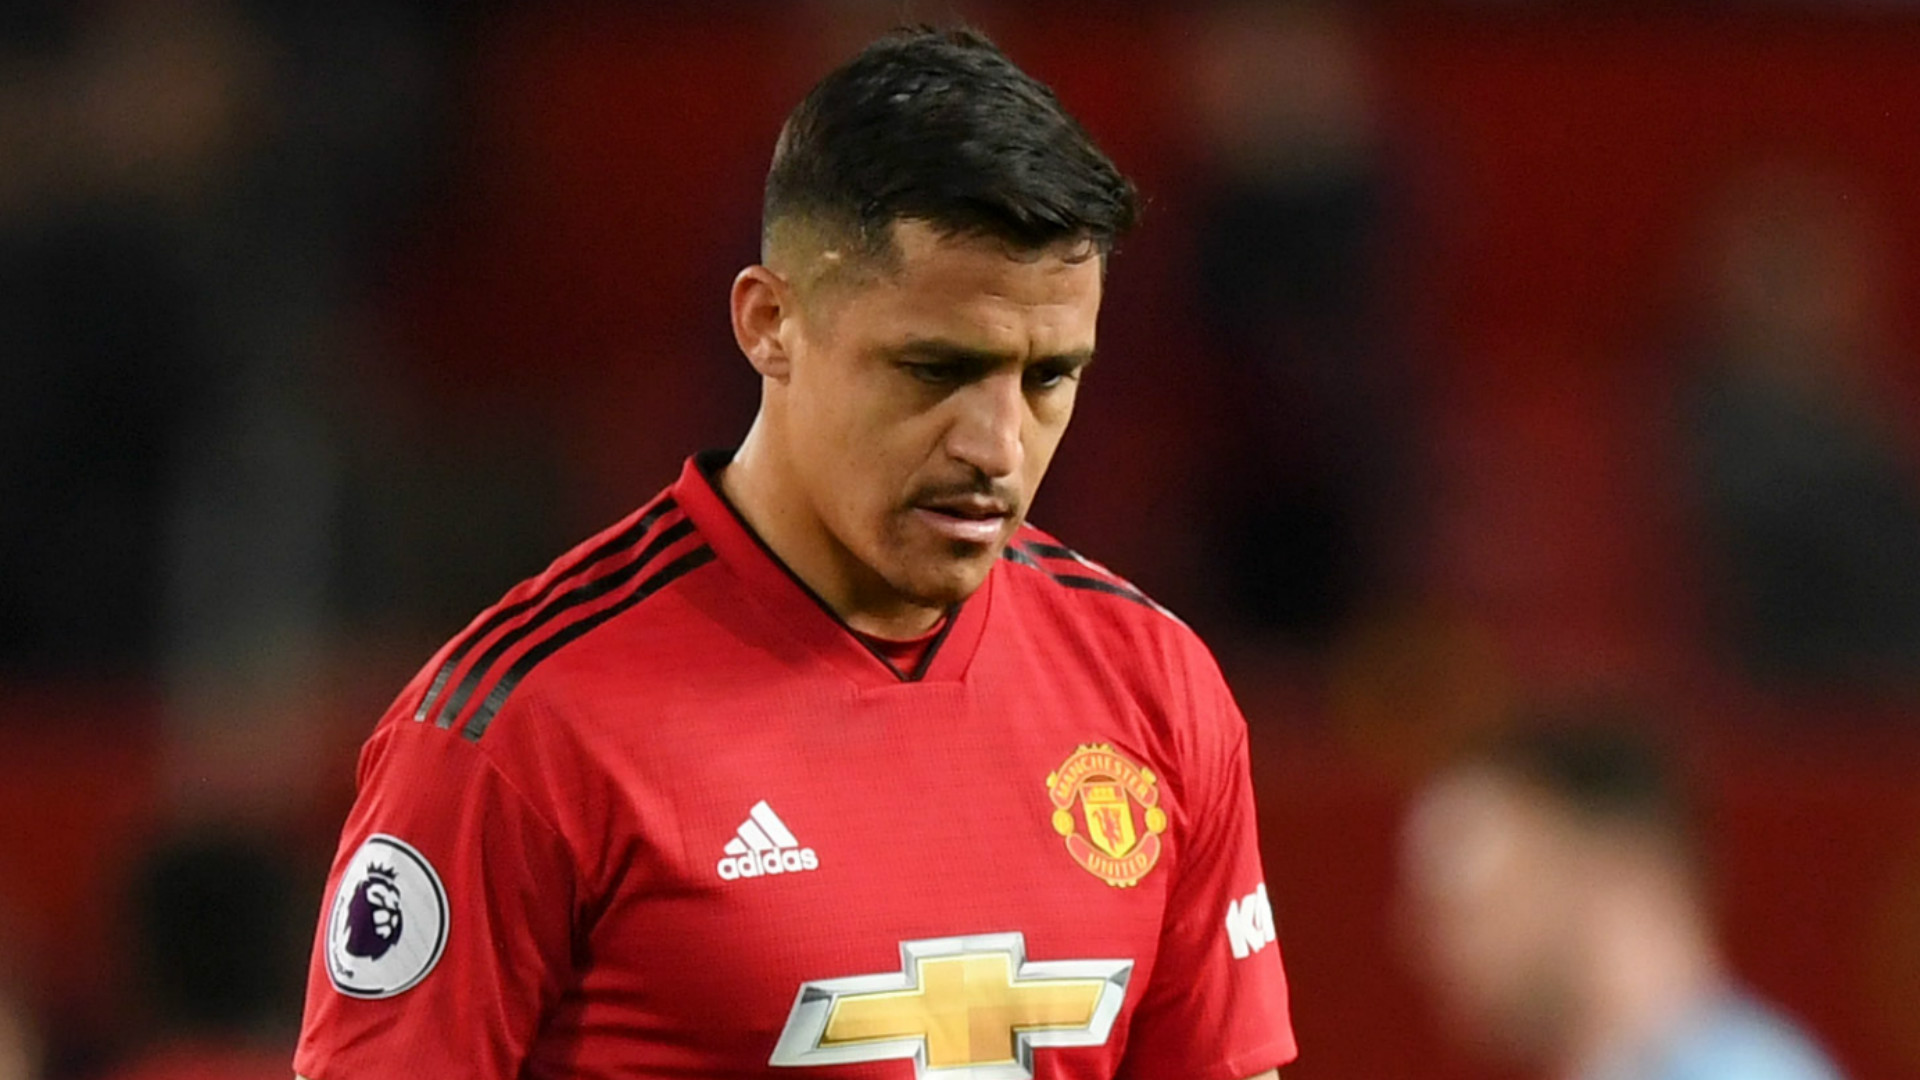 Manchester United boss Solskjaer says he won't 'spoon feed' Sanchez